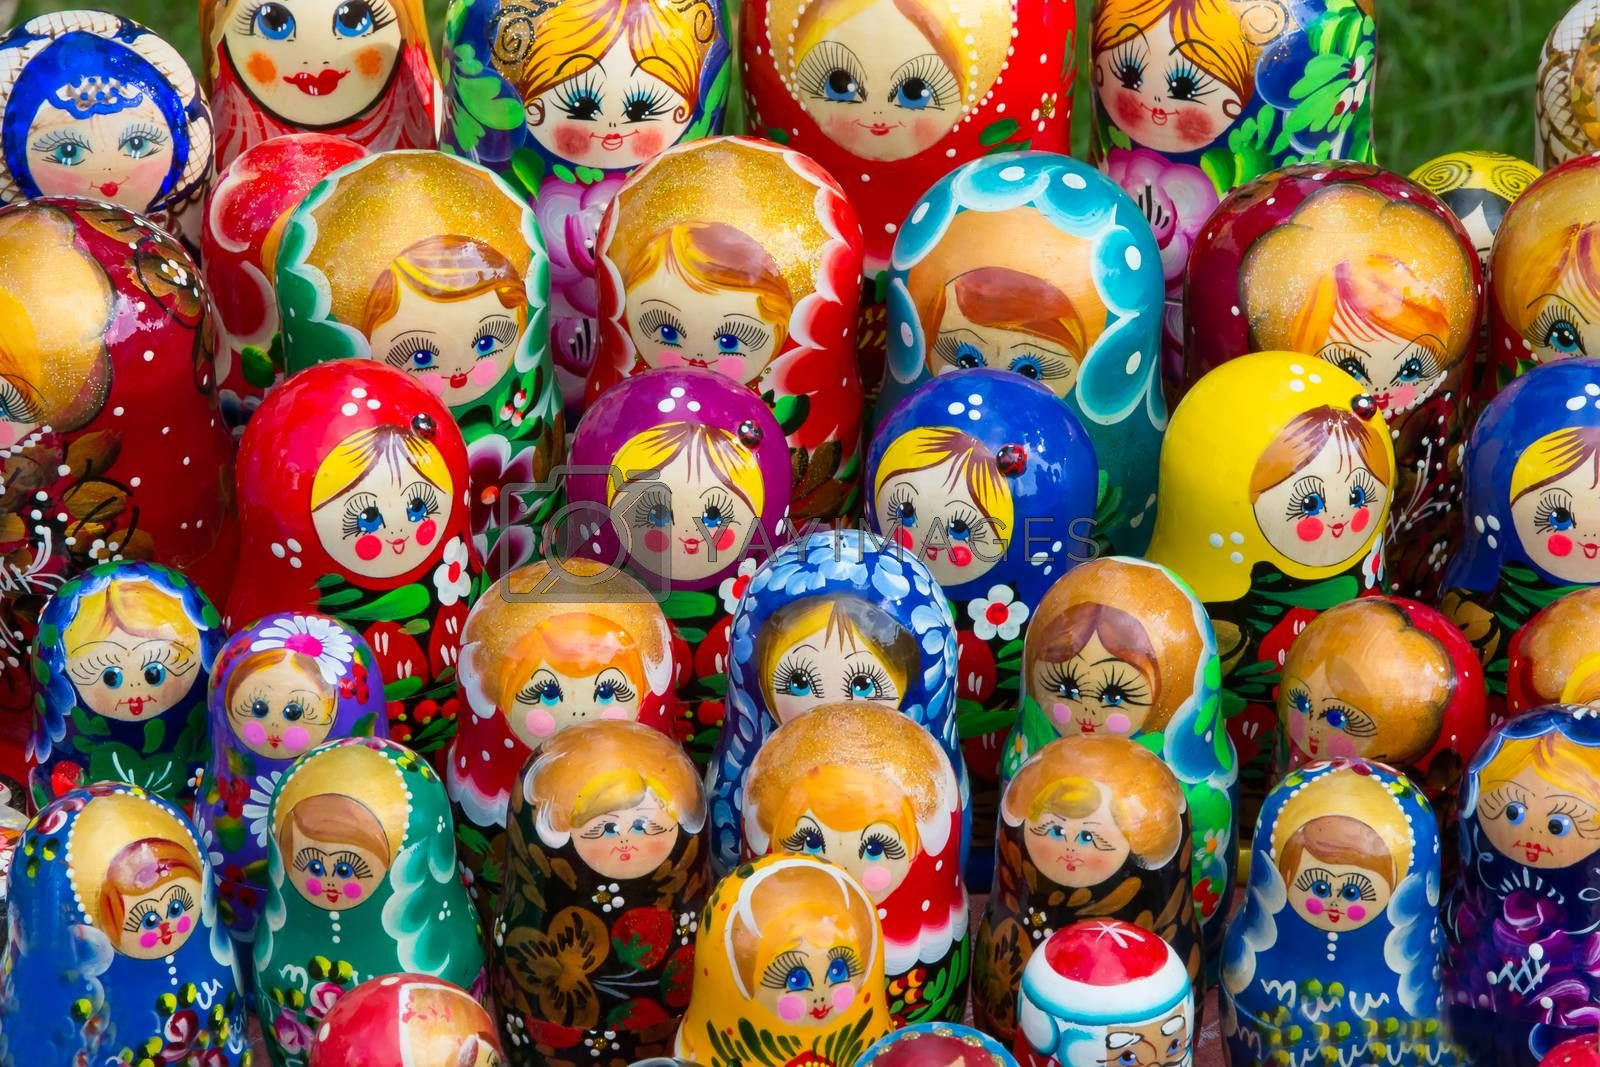 Many Russian matreshkas. The Russian national doll is a souvenir of nesting dolls